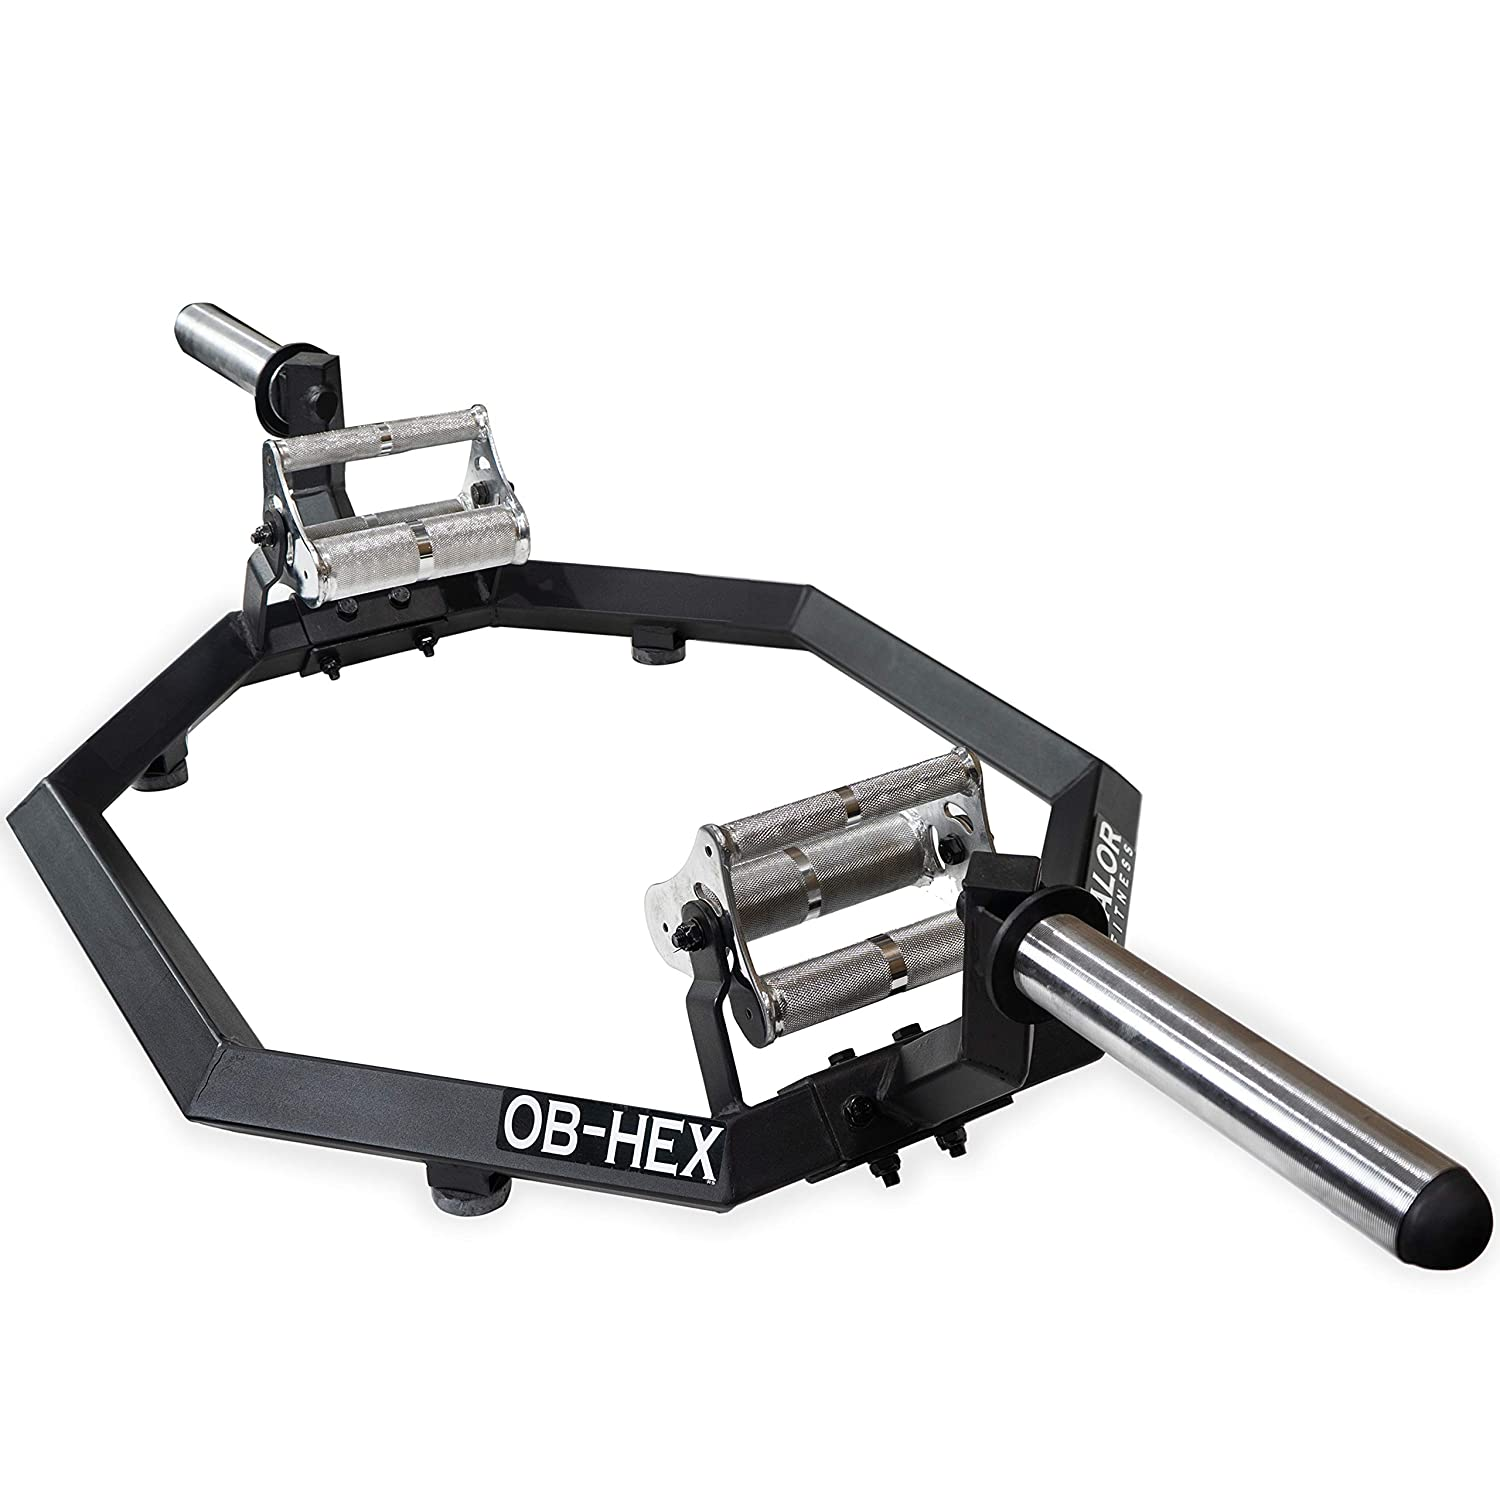 Valor Fitness OB-HEX Hex Trap Bars with Multiple Grip Options for Shrugs, Deadlifts, and Squats – Builds Muscular Shoulders, Back, and Legs